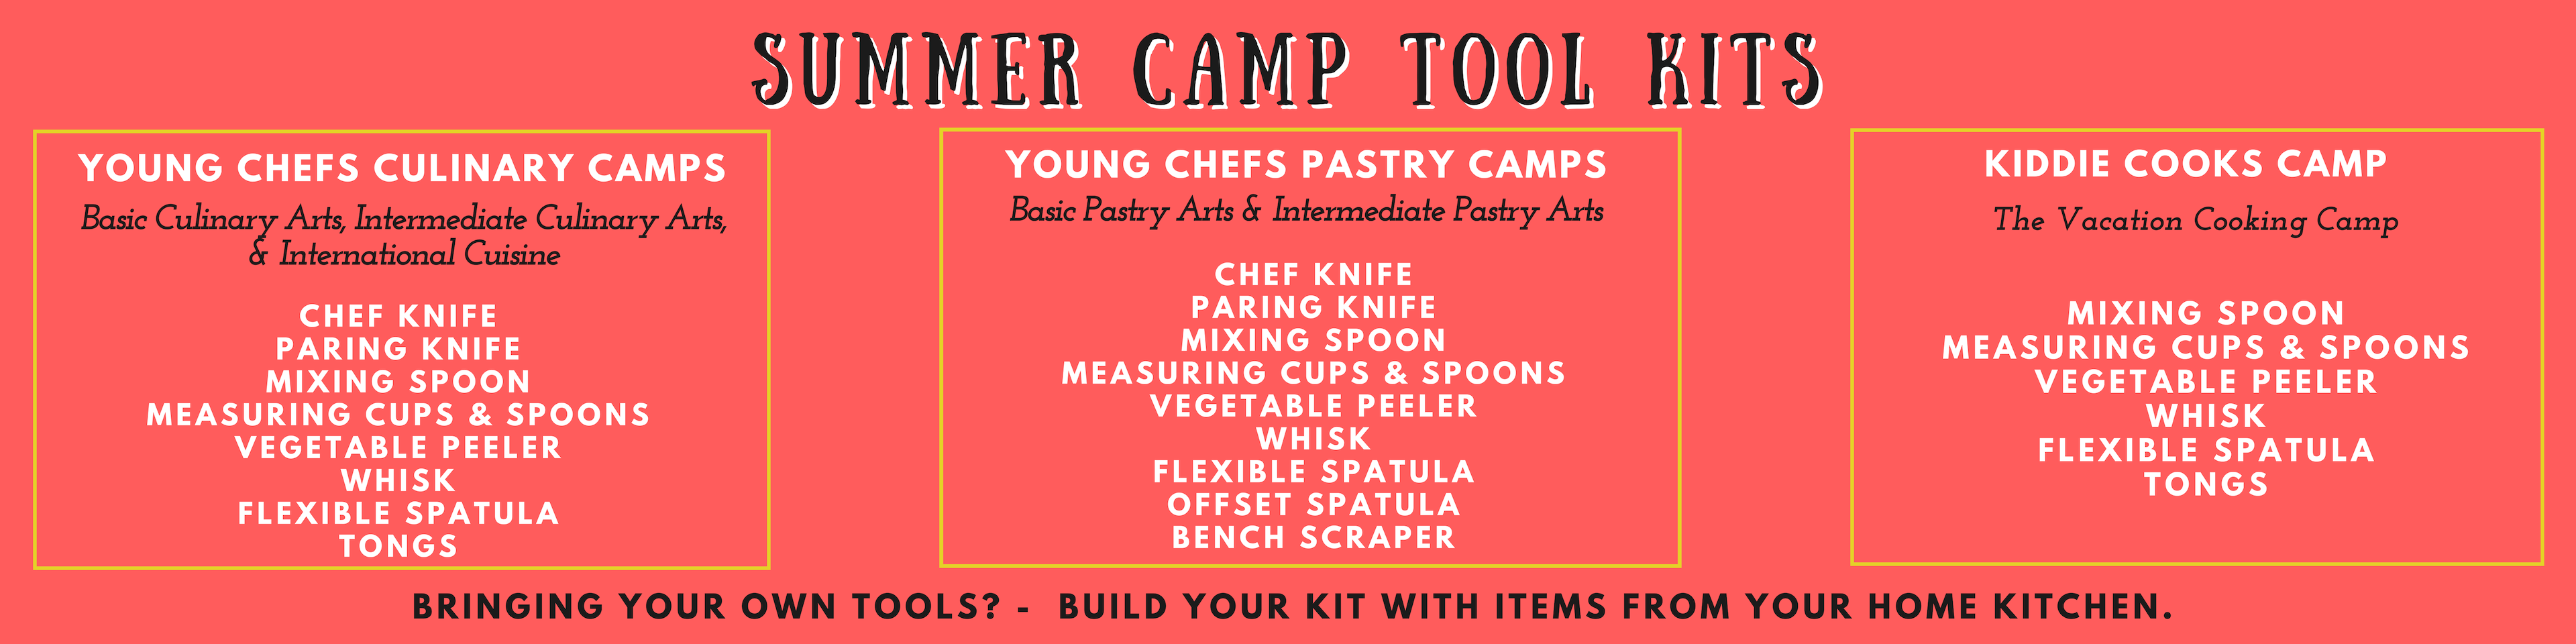 camp-tool-lists.png